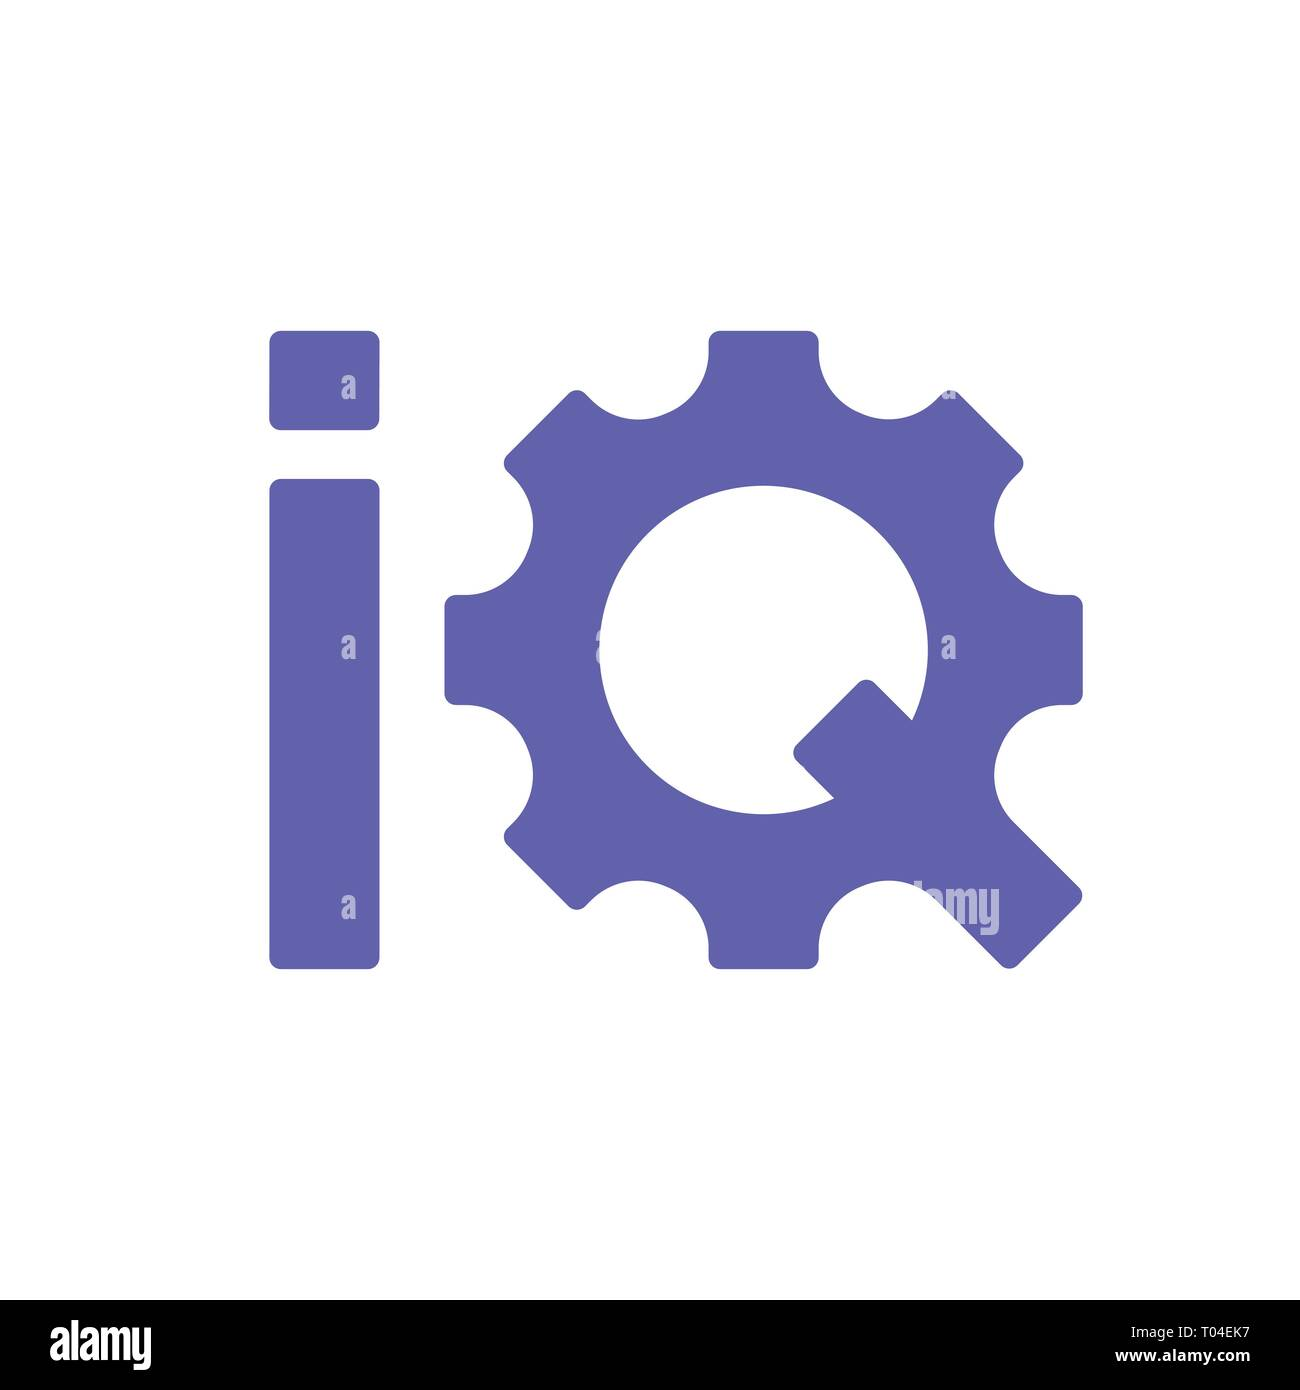 Initial Letter IQ Logo Lowercase colorful design, Modern and Simple Logo Design. EPS 10 - Stock Image